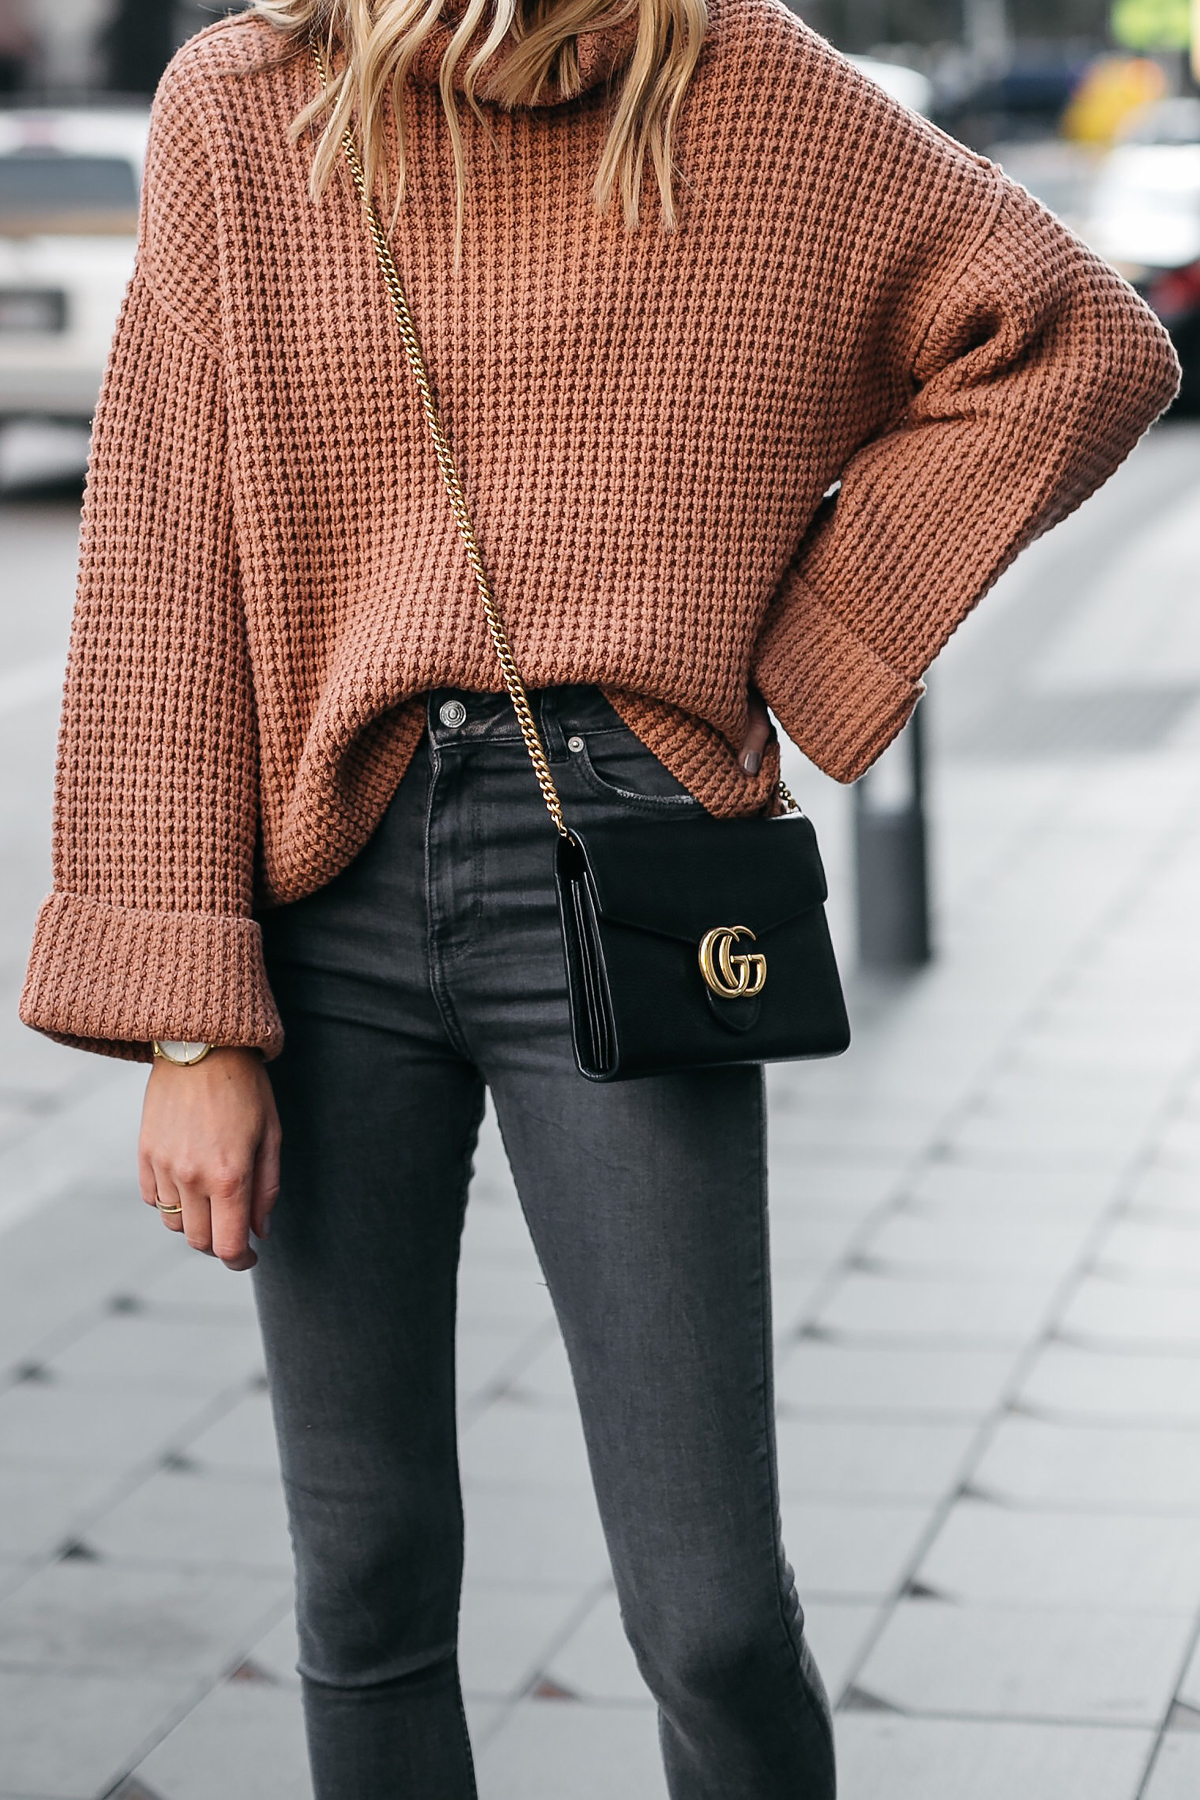 Fashion Jackson Oversized Sweater Free People Park City Pullover Tan Sweater Grey Skinny Jeans Gucci Marmont Handbag